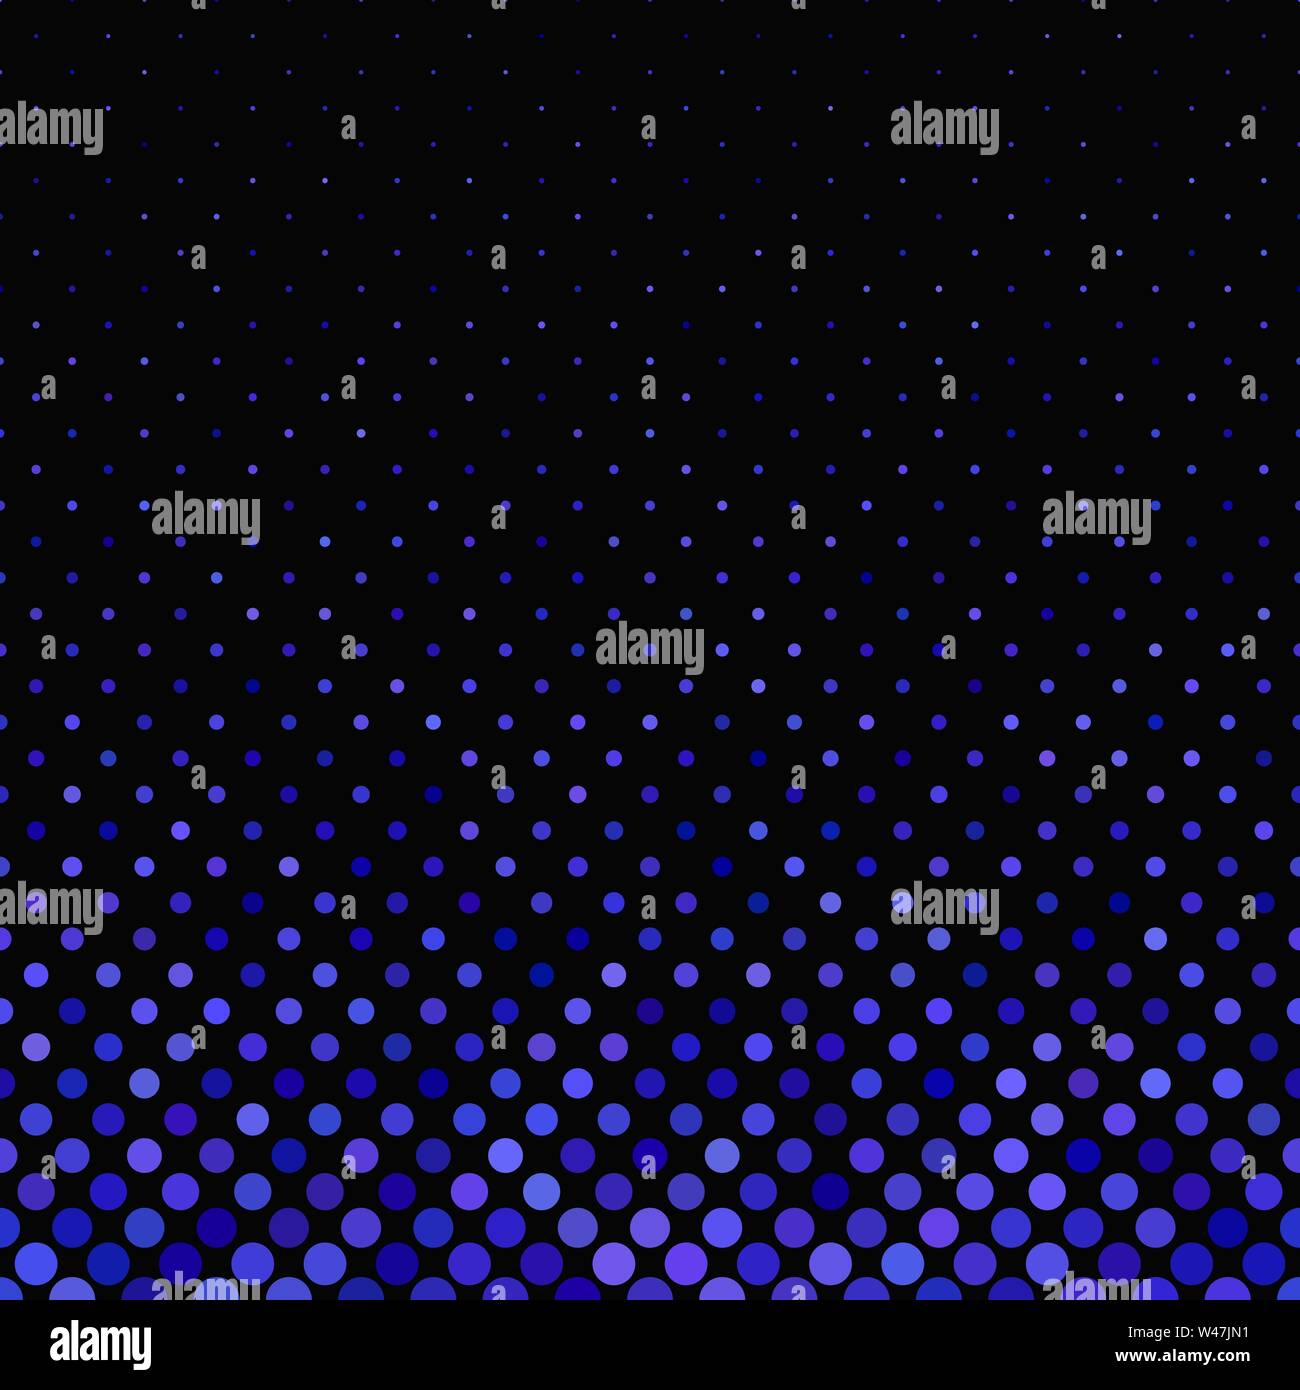 Blue geometric abstract dot pattern background - vector design - Stock Image